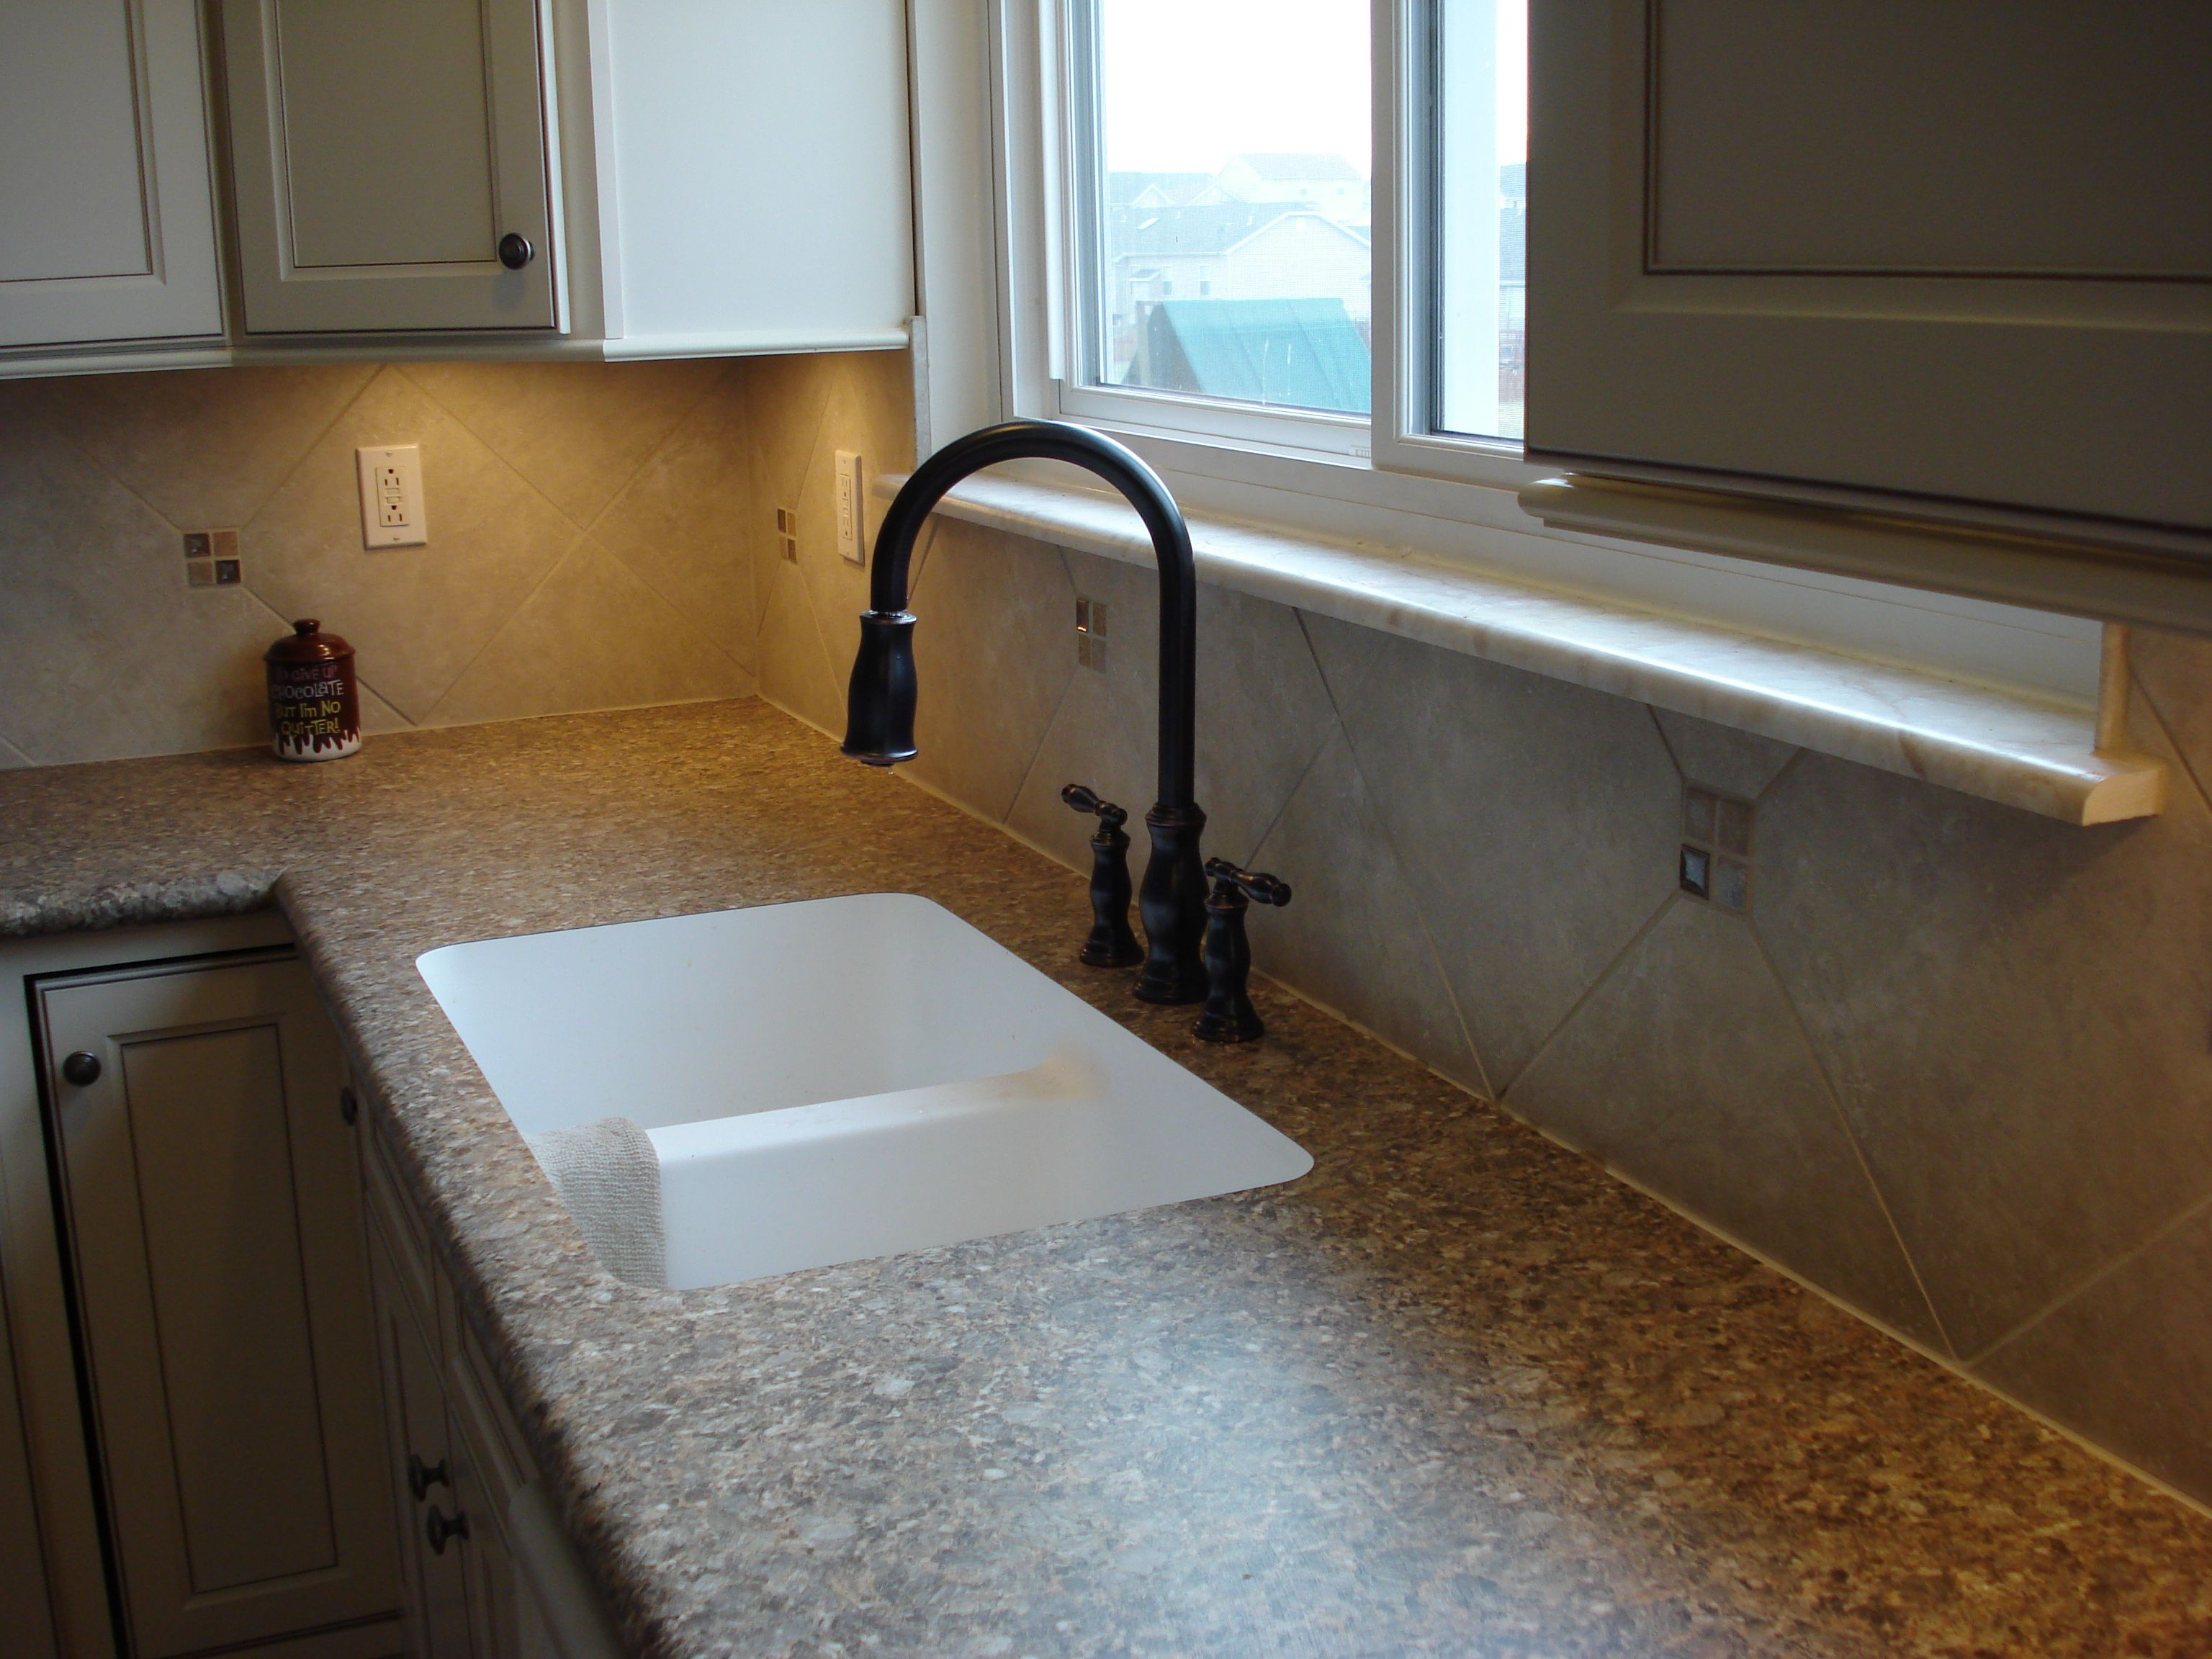 12 X 12 Tile Backsplash With Inserts Edge Sink Installed In A